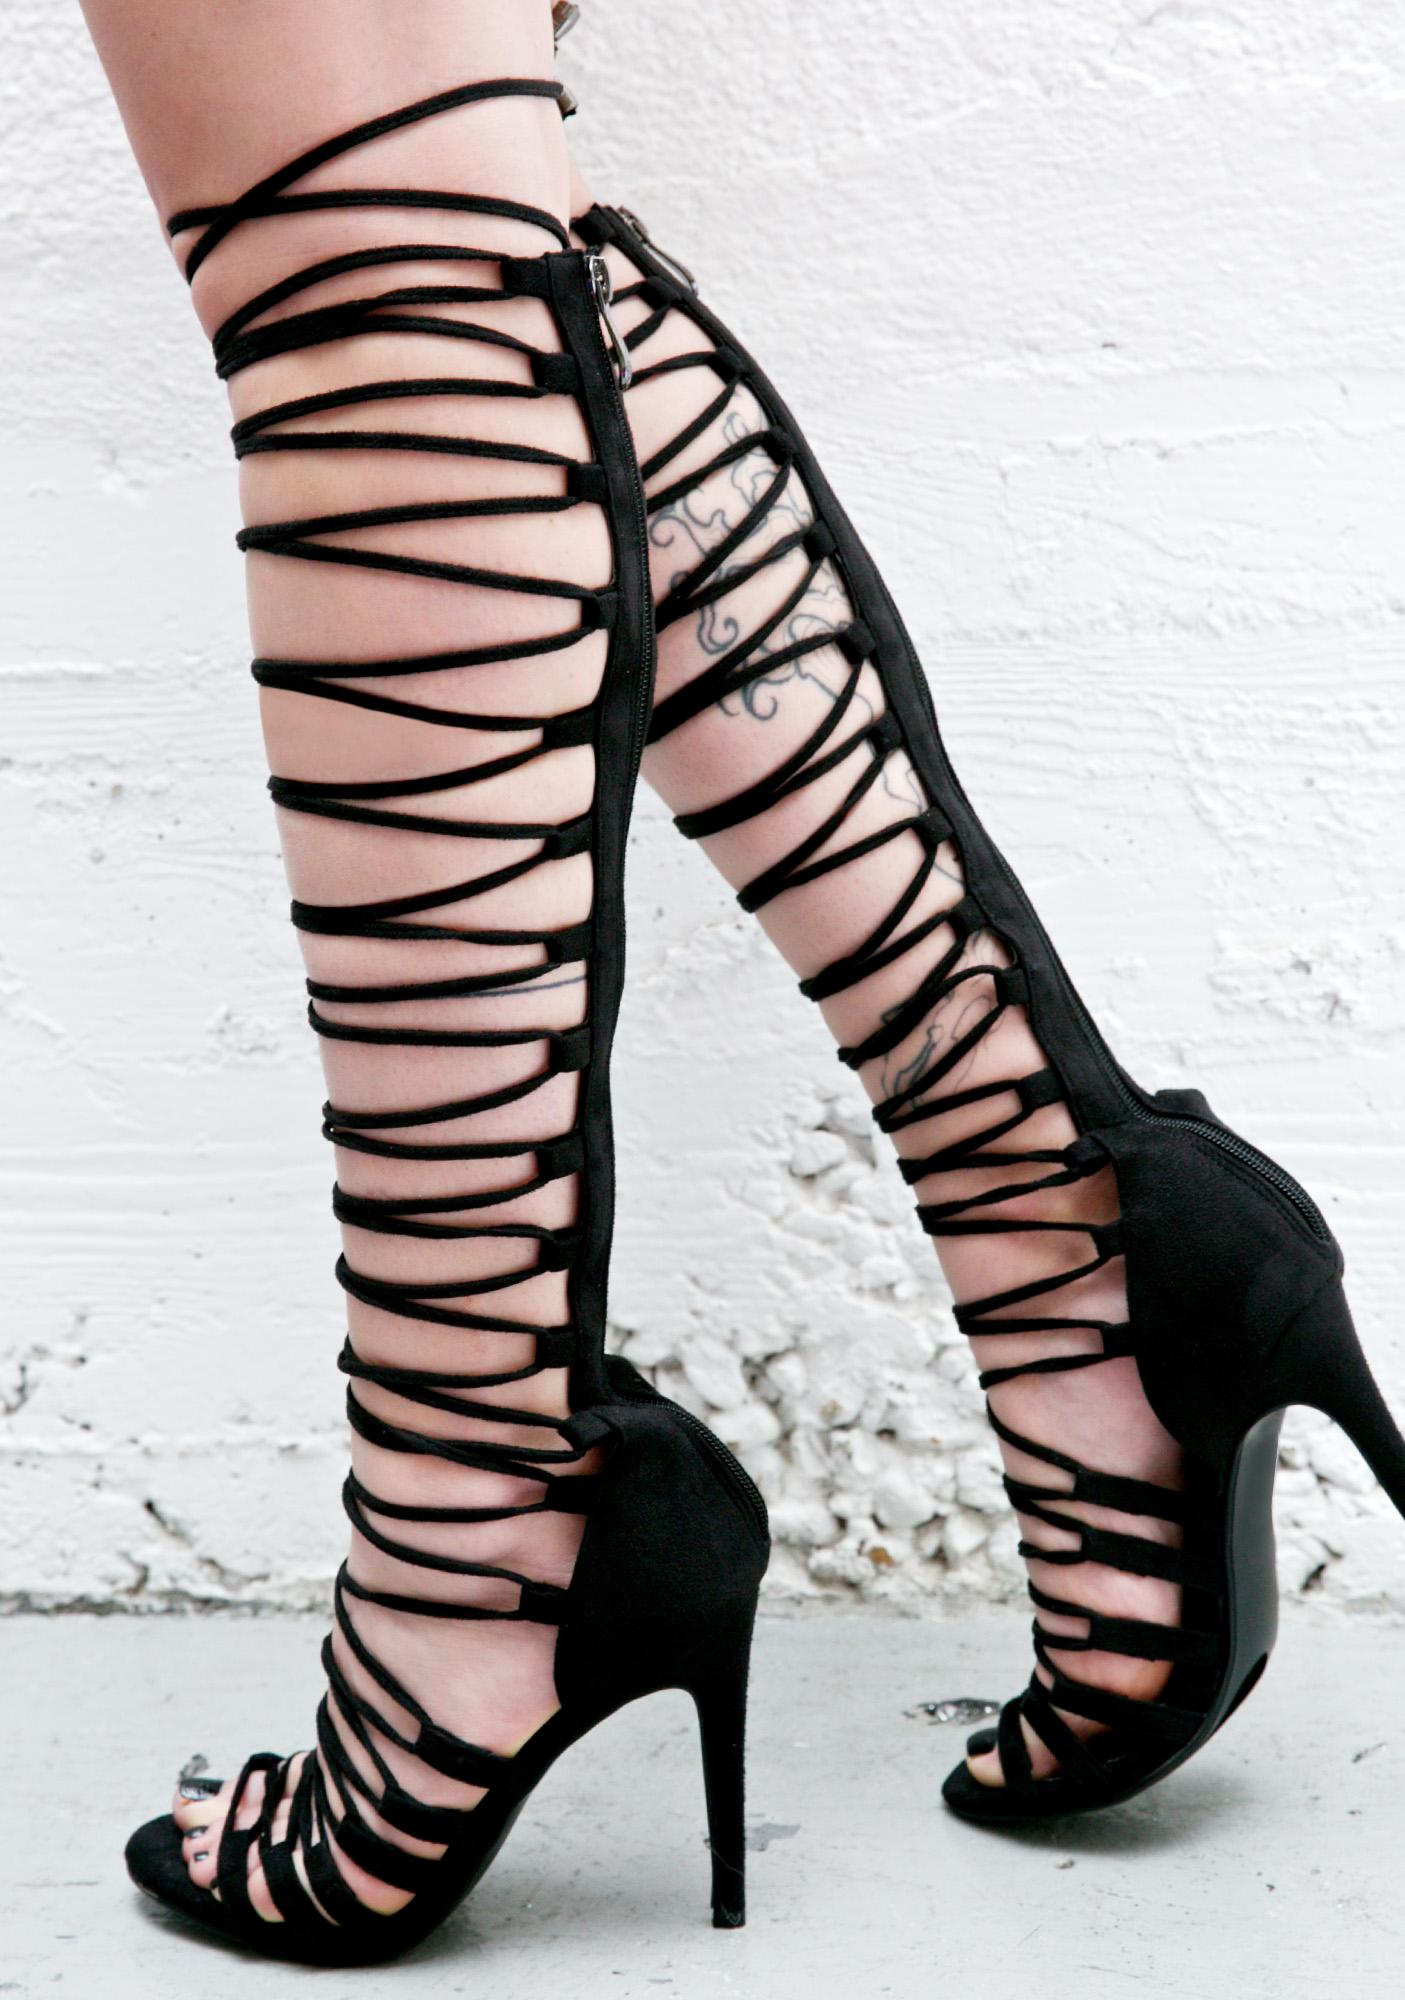 Supermodel Strappy Heels